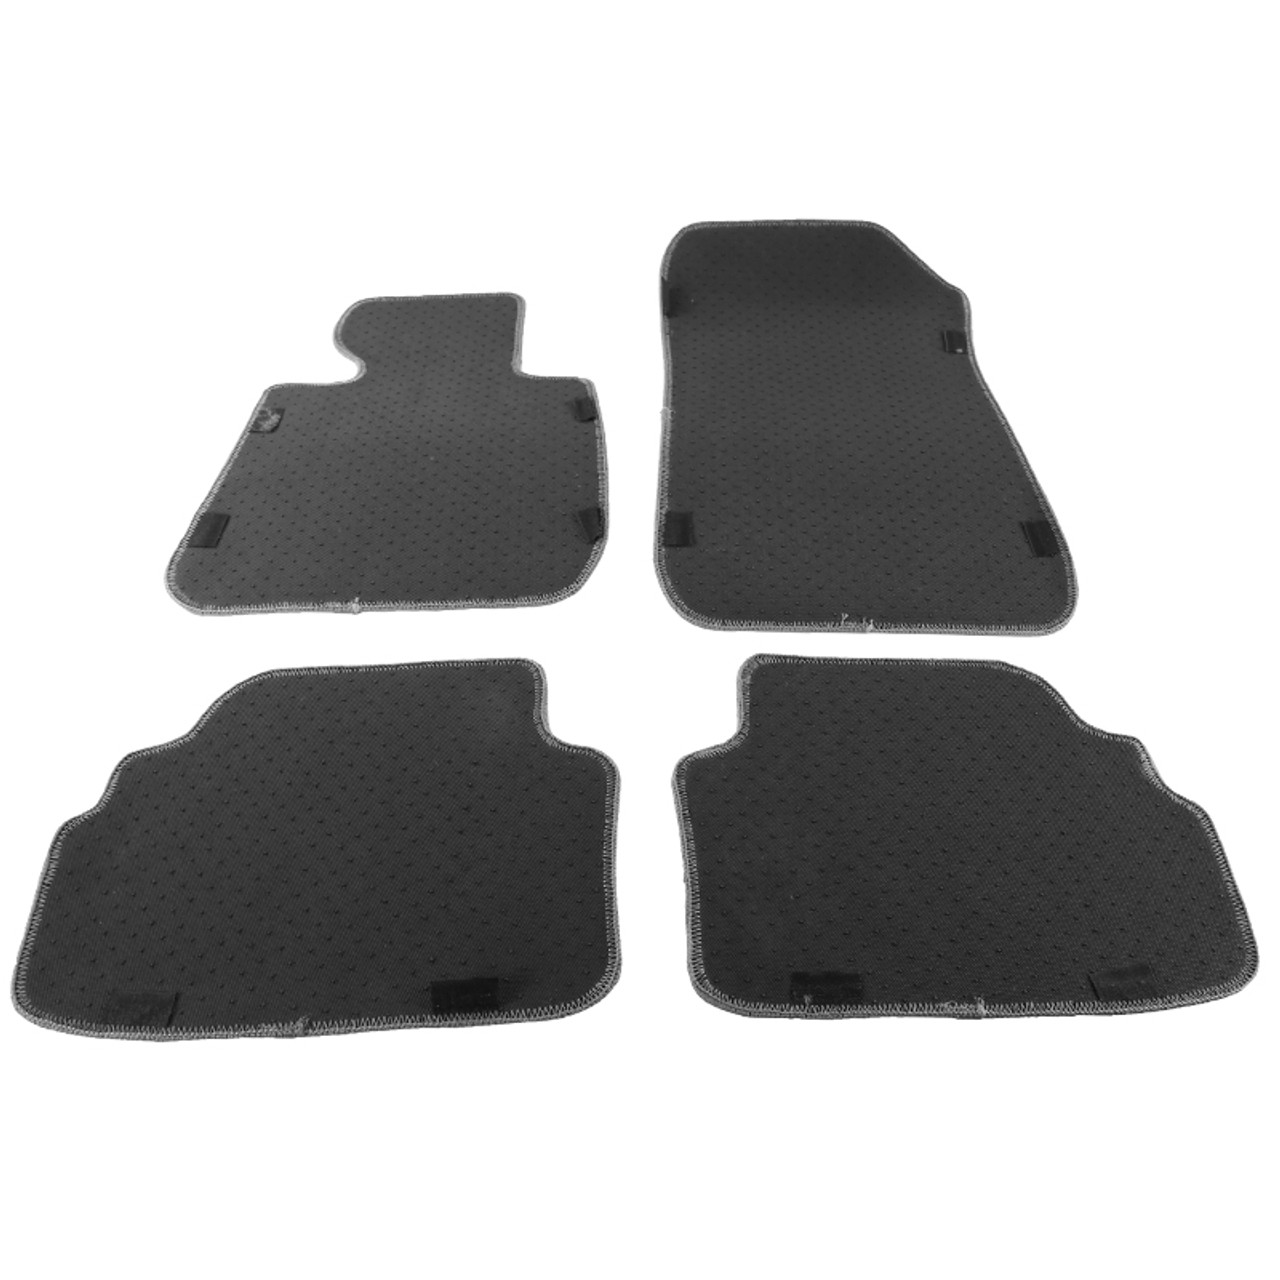 Car Floor Mats for BMW M3 Coupe E92 2009-2013 2010 2011 2012 Full Covered Advanced Leather Carpet Auto All Weather Protection Front /& Rear Liner Red